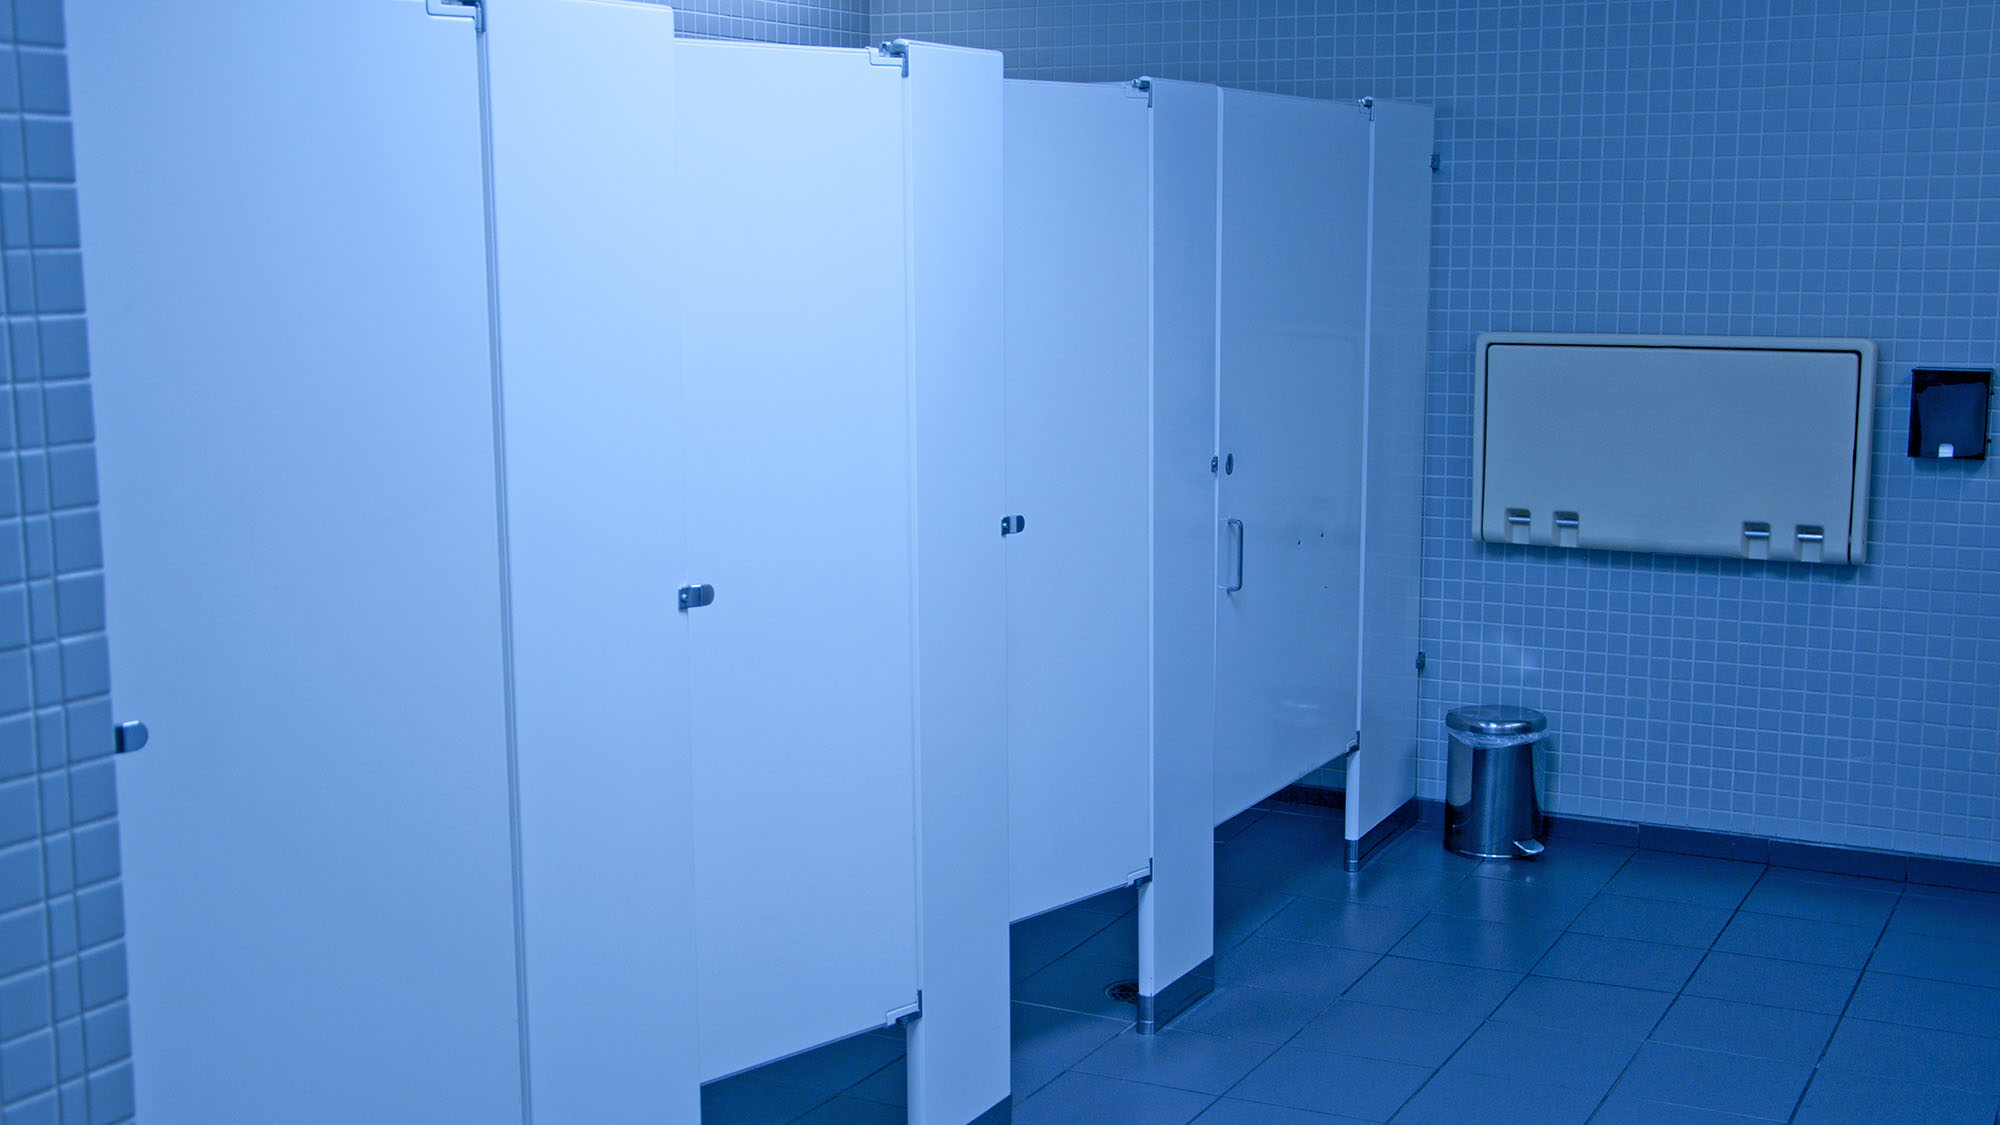 Can't do what you need to do in a public toilet? You're not alone